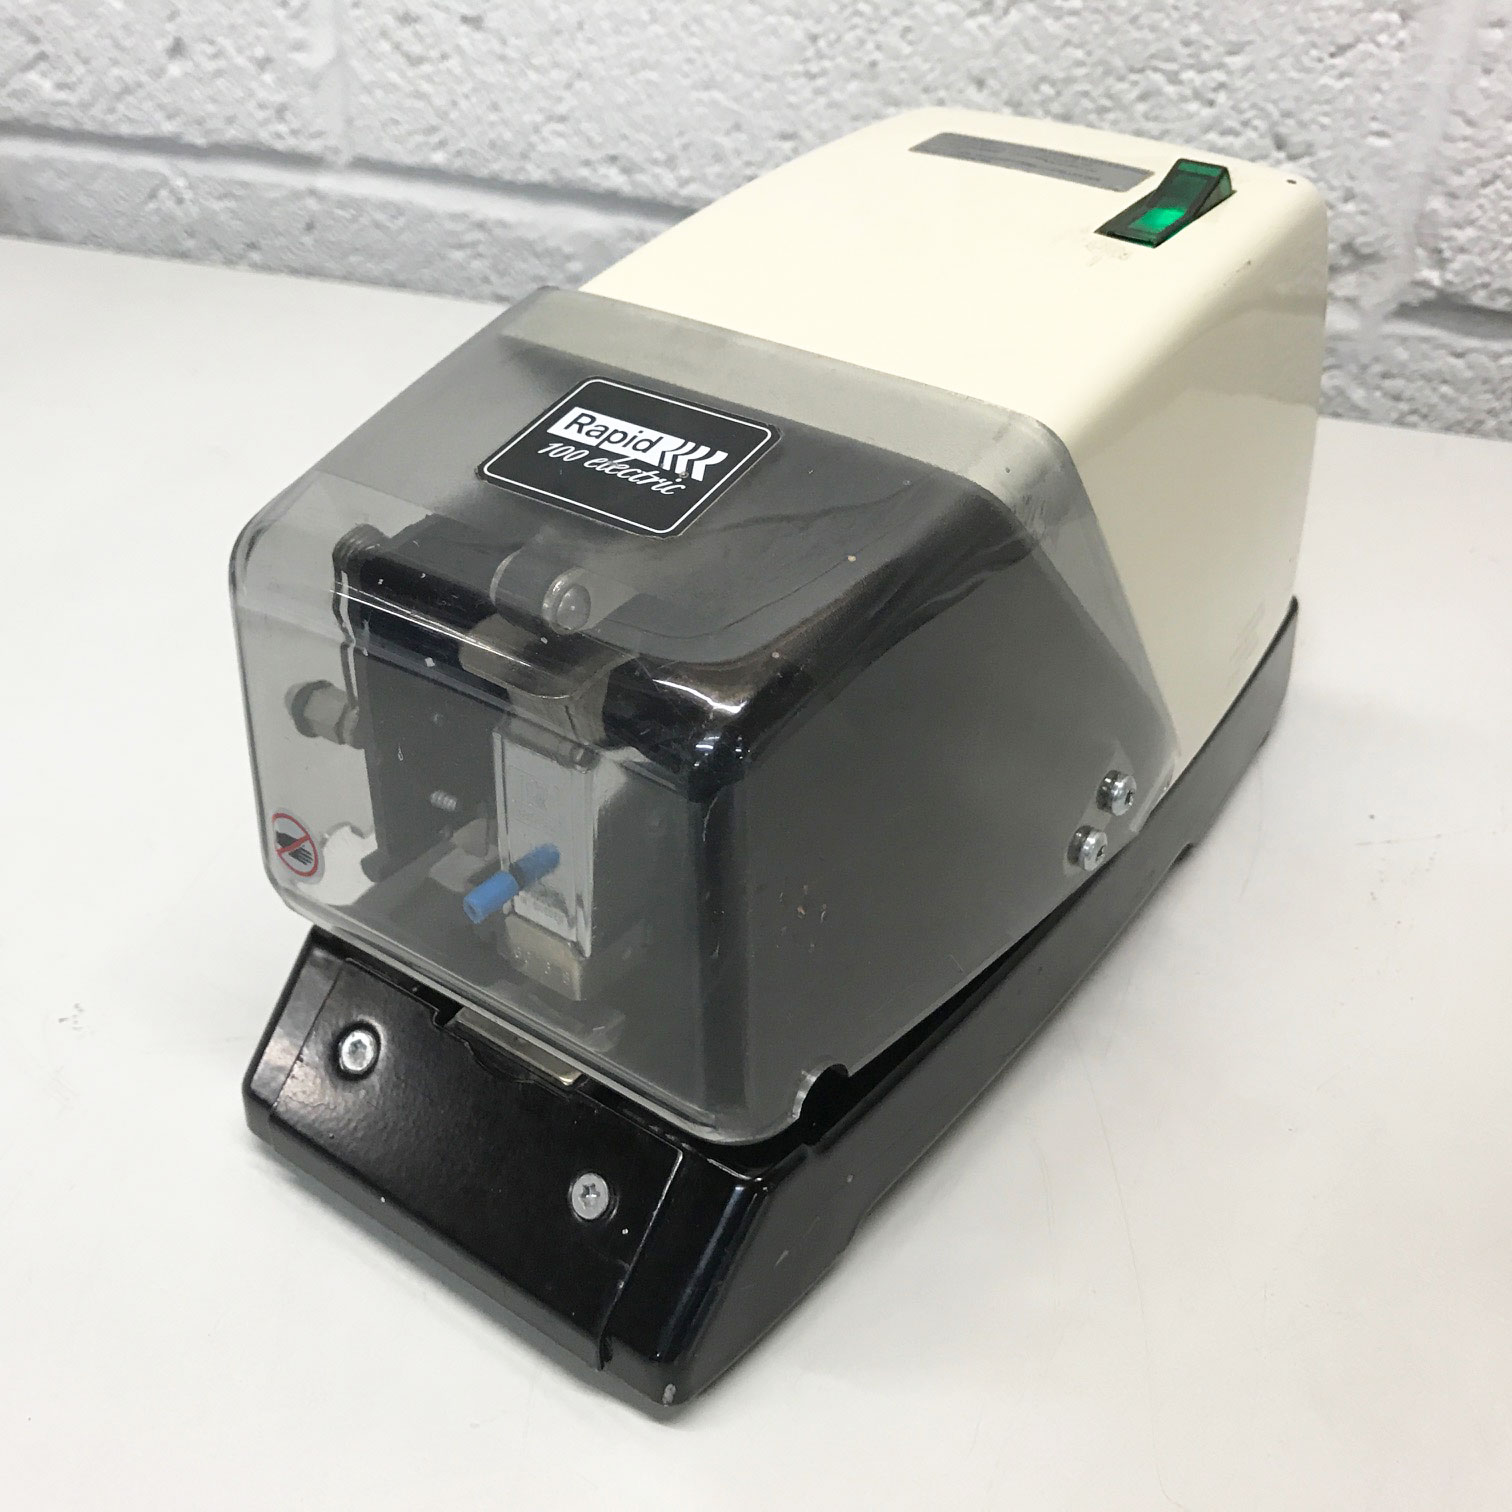 Pre-owned Rapid 100E Electric Pad Stapler